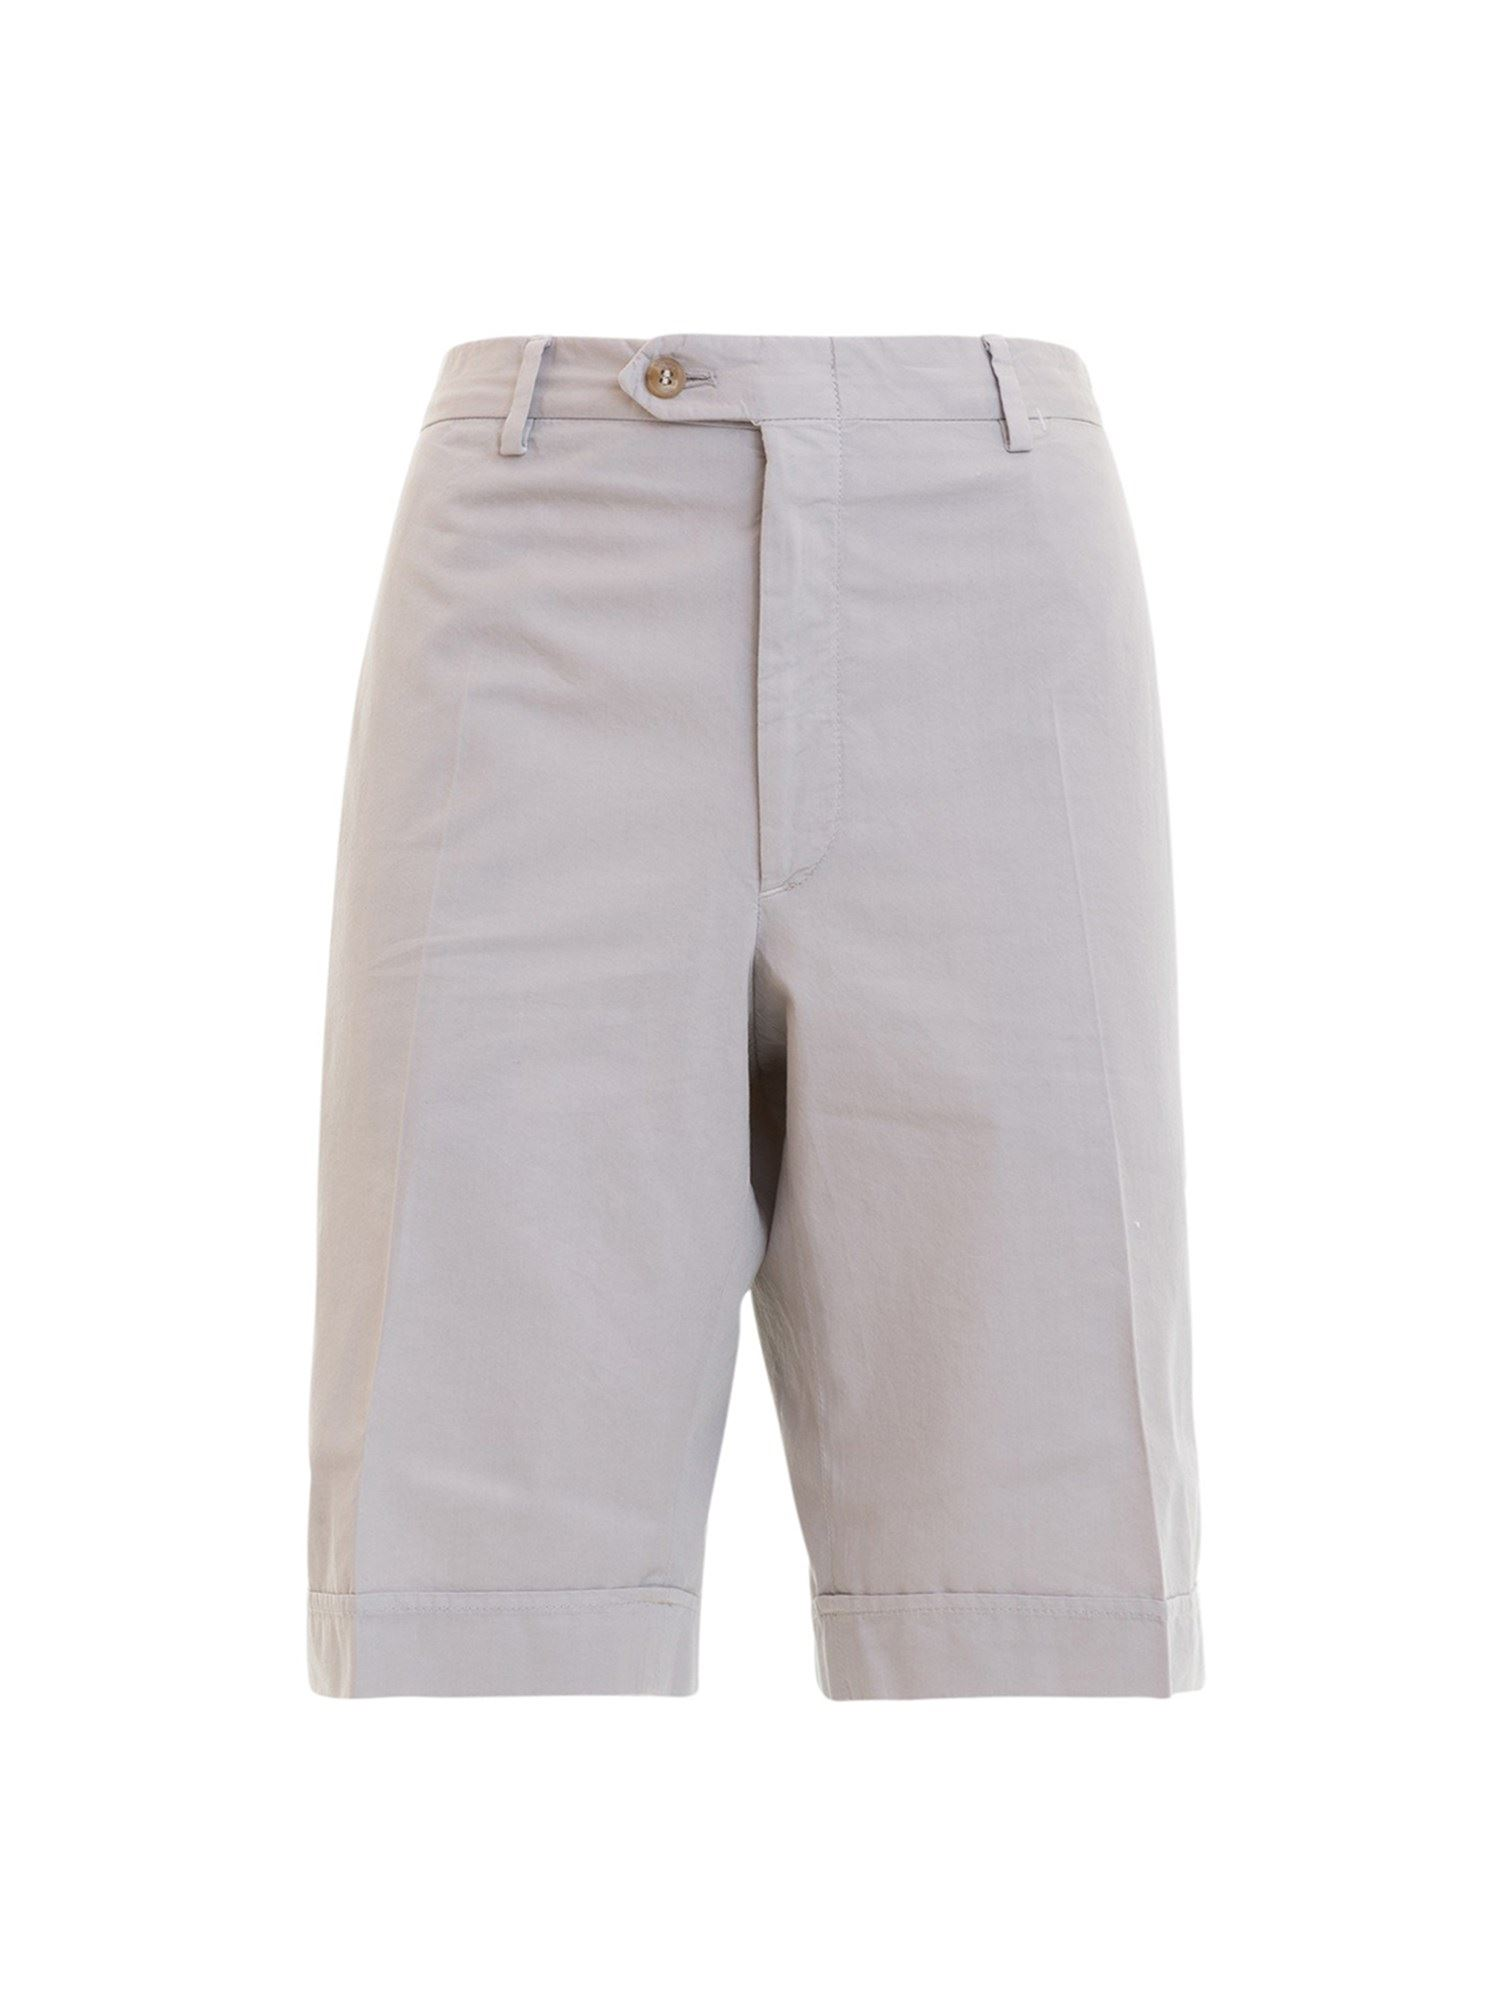 Brioni Beige Cotton Short Chino Trousers In Brown